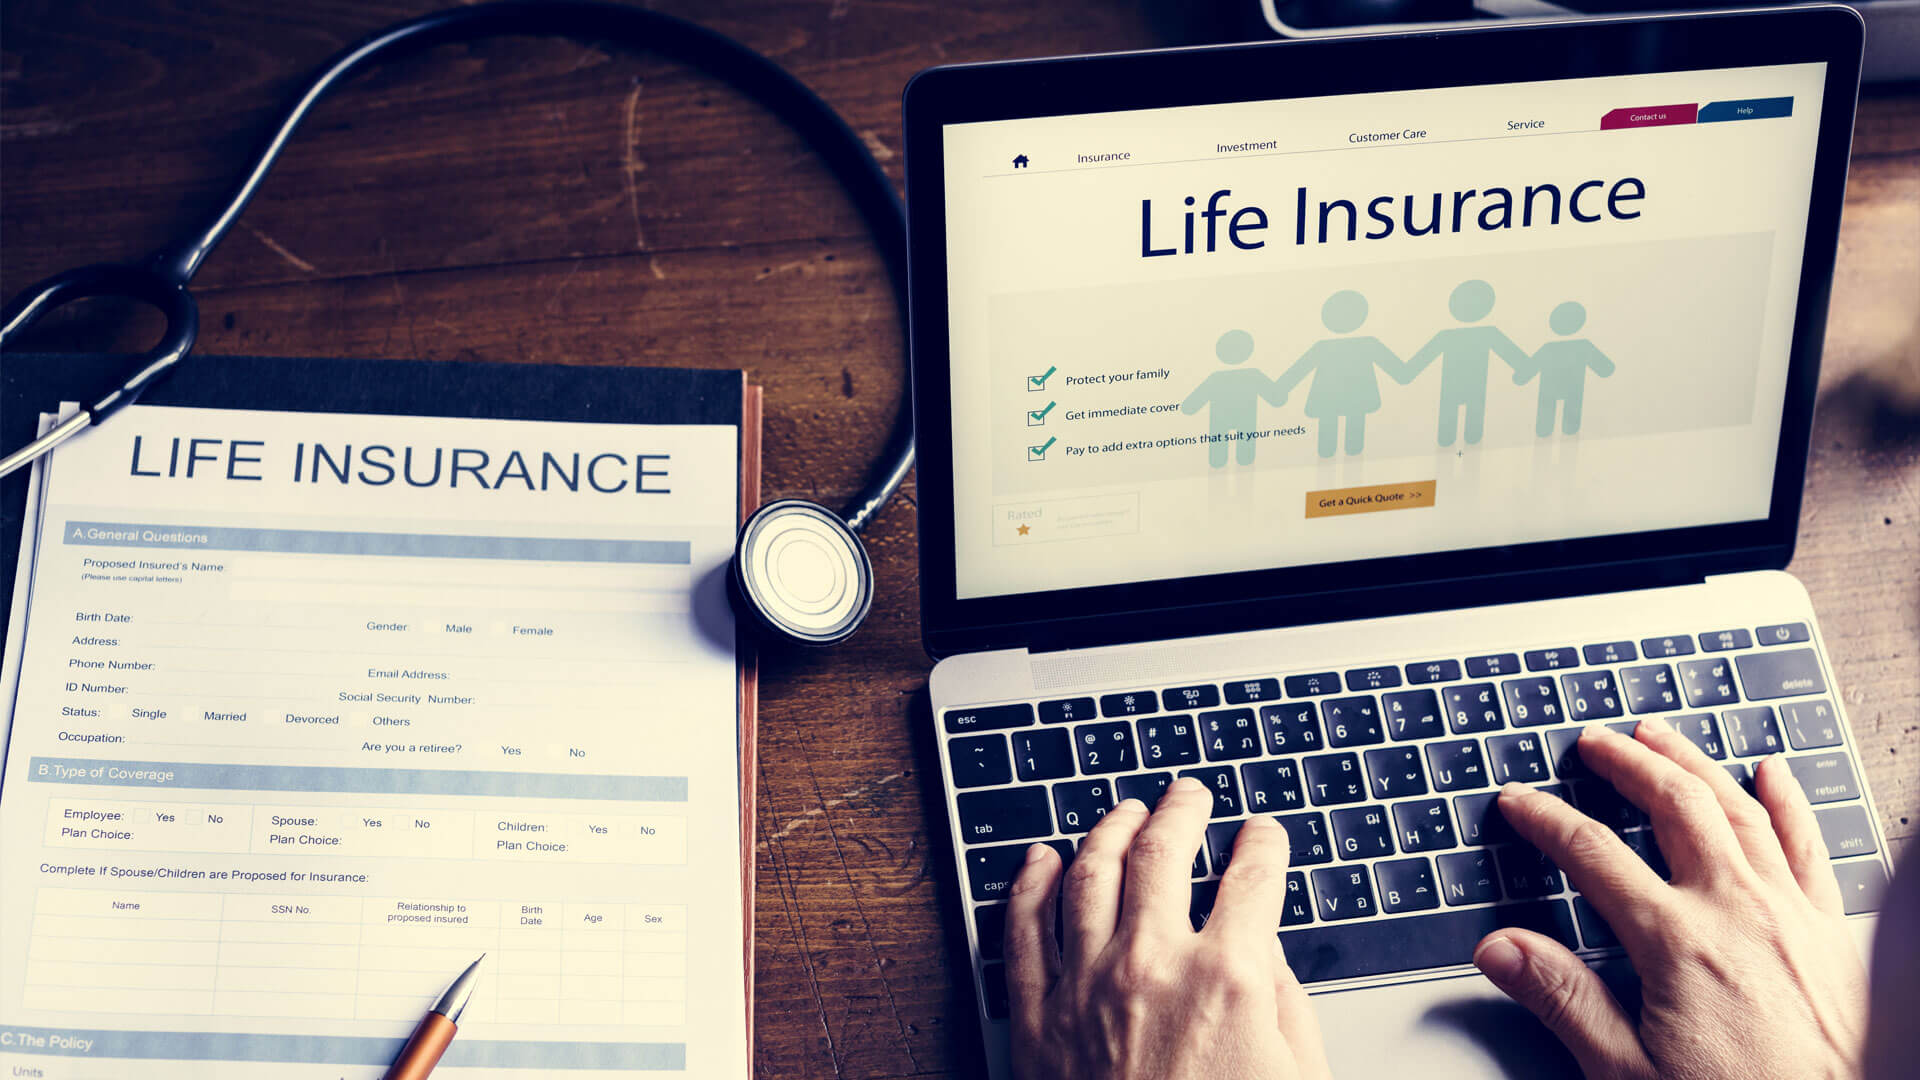 life insurance, life insurance buy, life insurance india, life insurance consultants, term insurance, term insurance buy, term insurance consultants, term insurance india